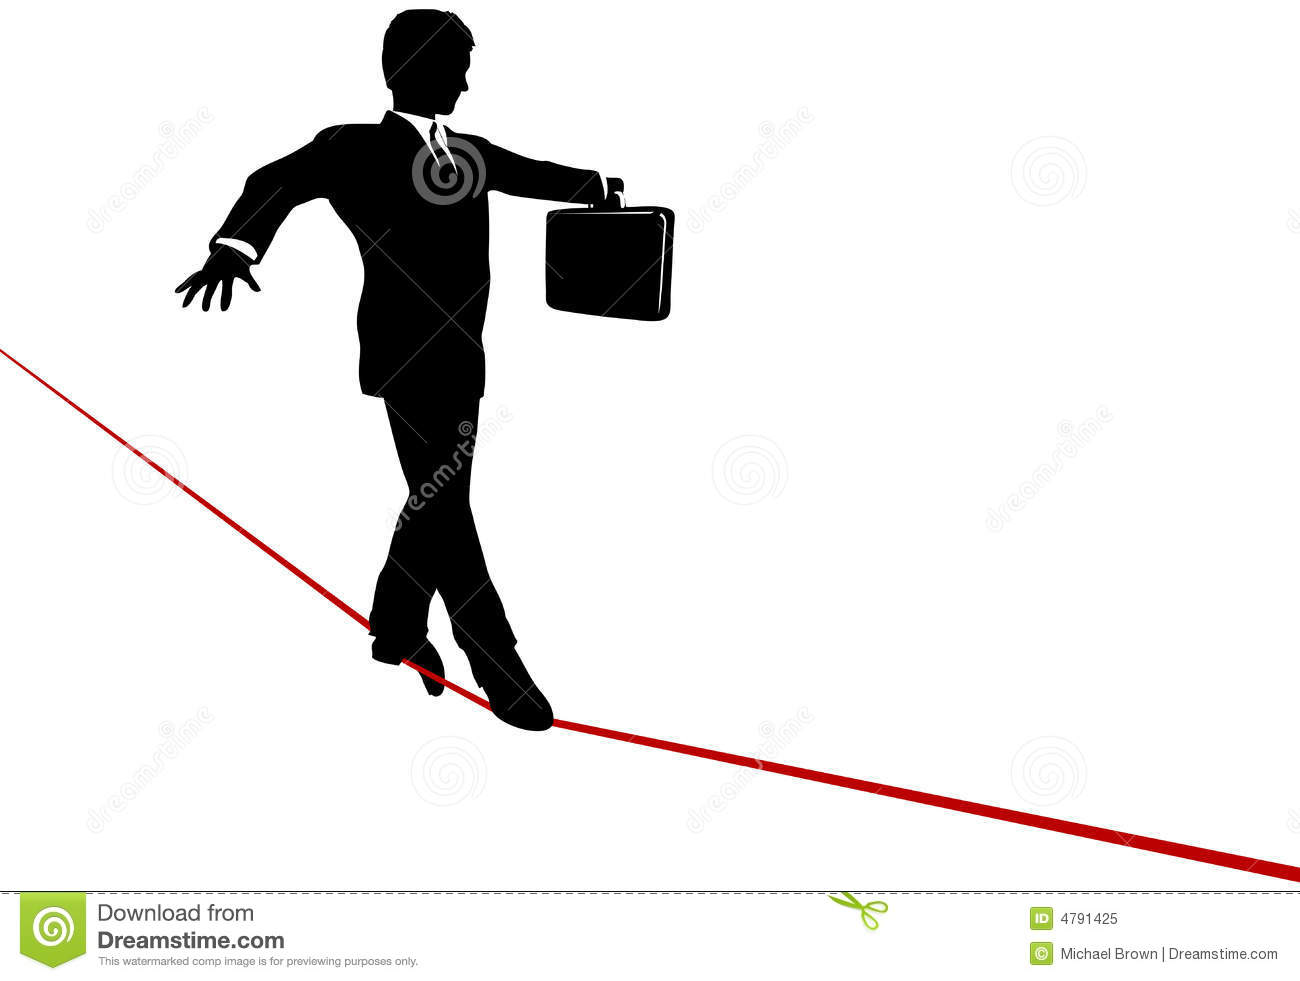 business-man-balance-act-risk-tightrope-4791425.jpg